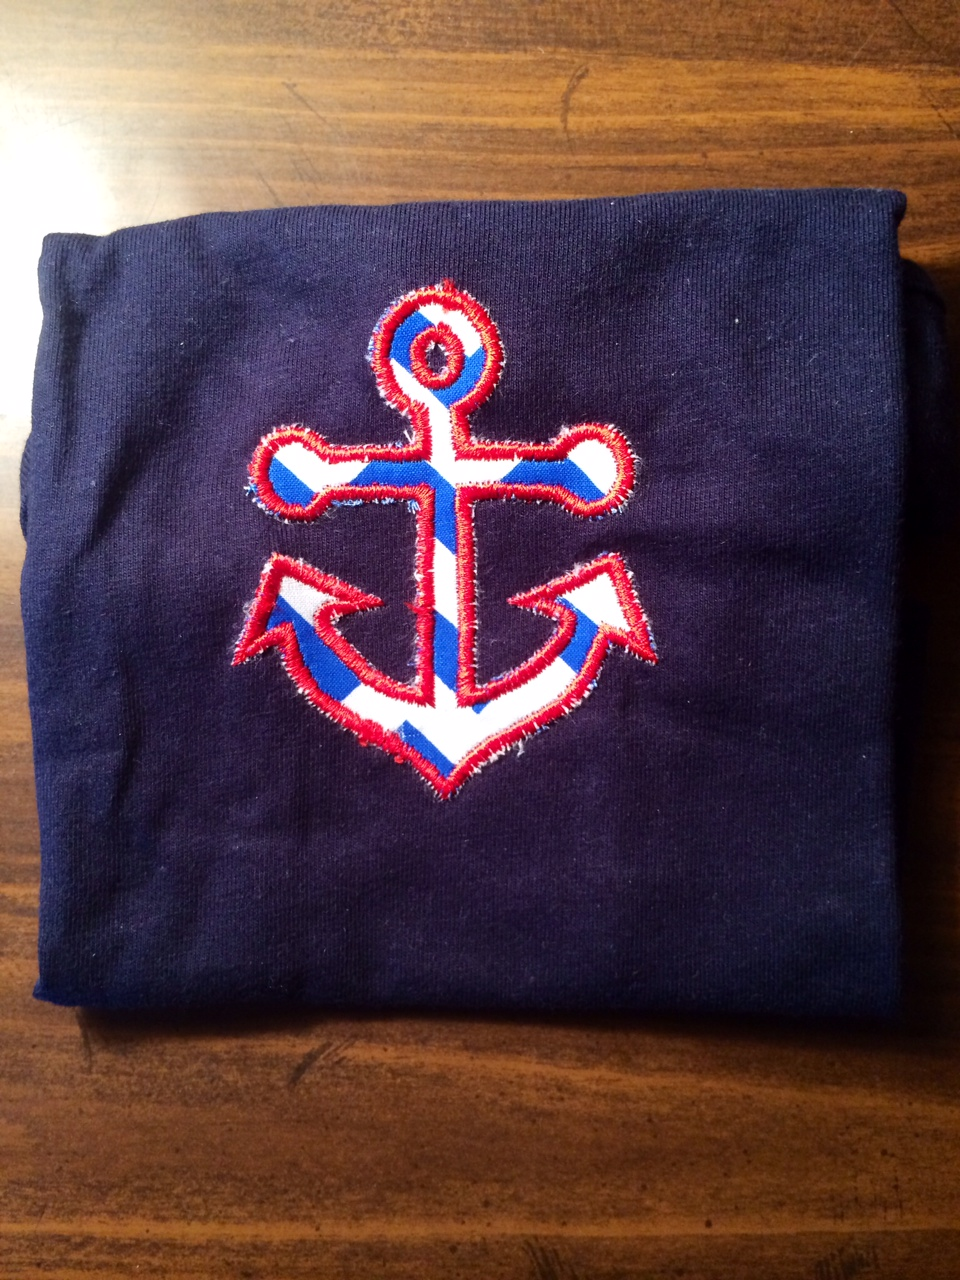 Raggy Anchor Applique T-Shirt from KLH Designs